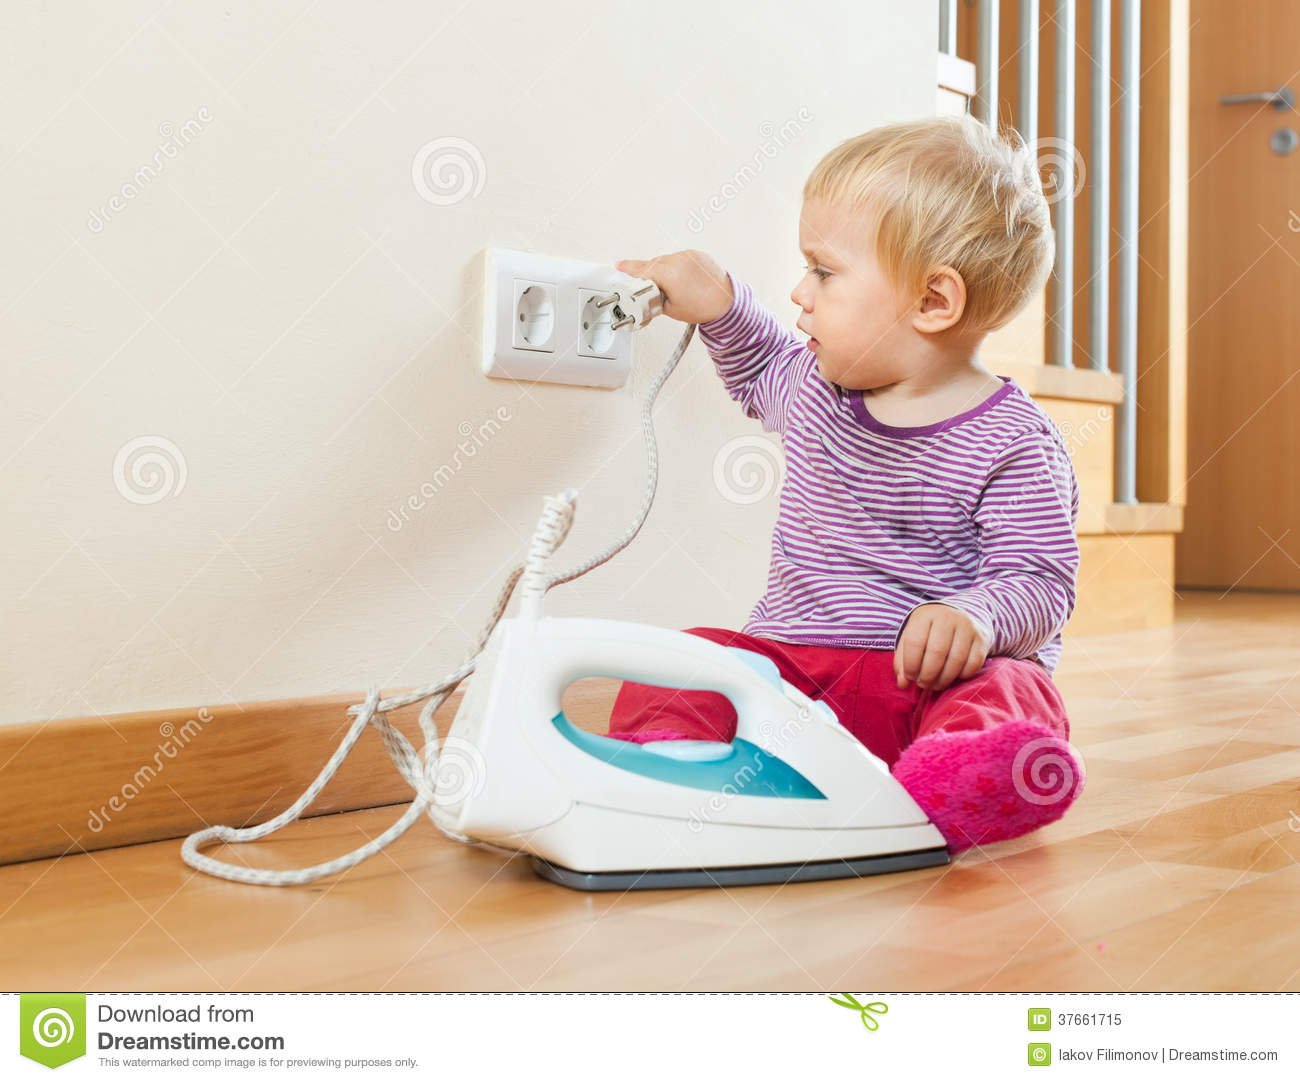 Toddler Playing With Electric Iron Royalty Free Stock